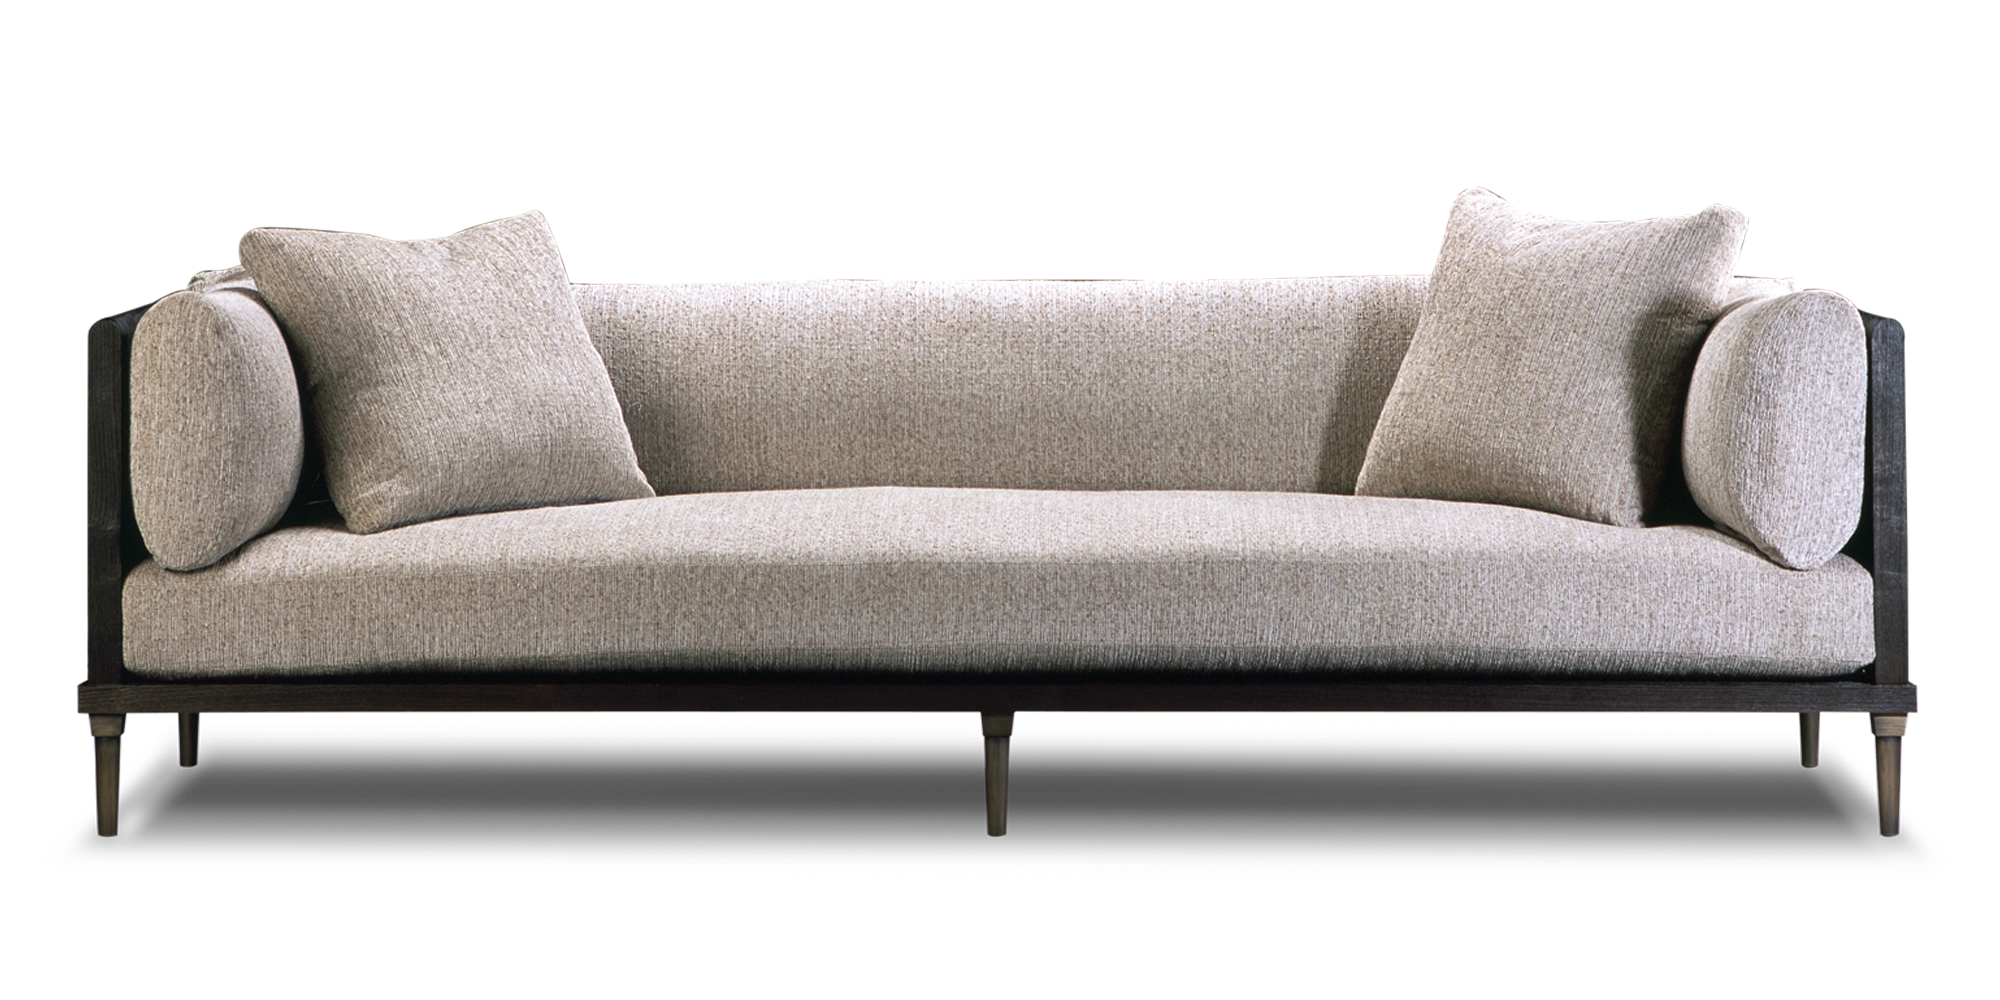 Chambord Sectional Sofa in Jiun Ho Inc